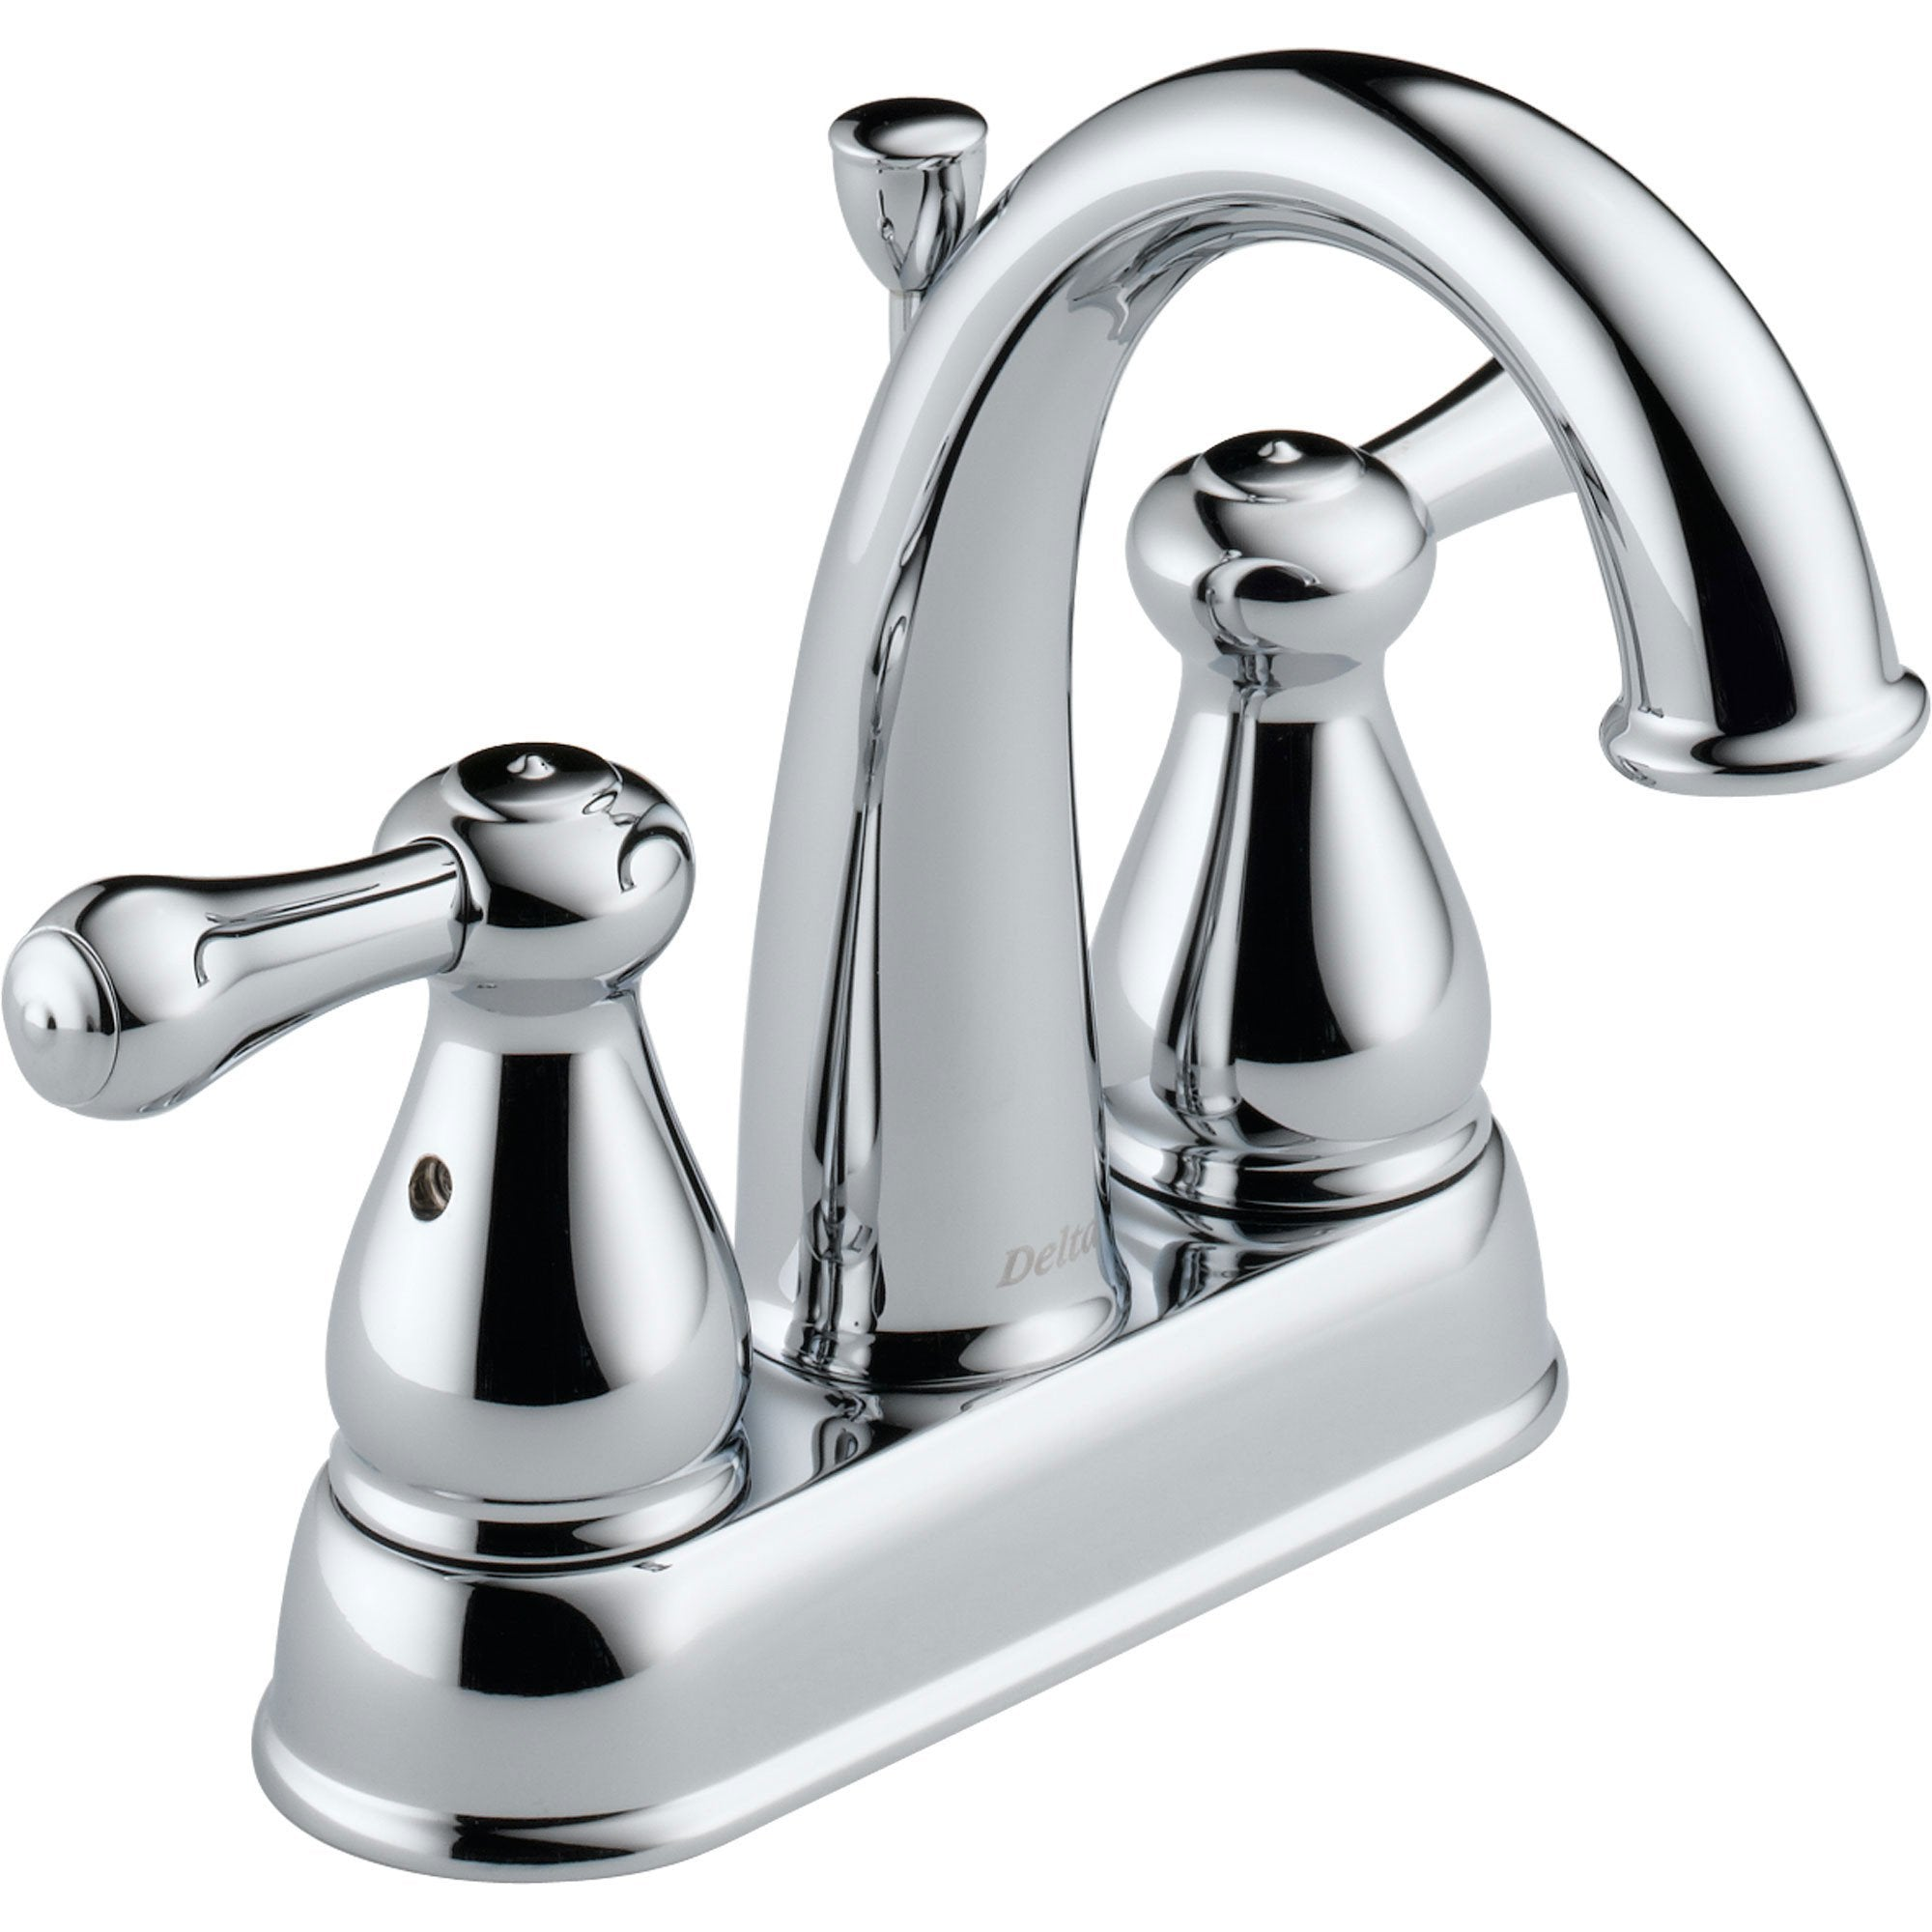 "Delta Leland 4"" Centerset Chrome Finish High Arc Bathroom Sink Faucet 572910"